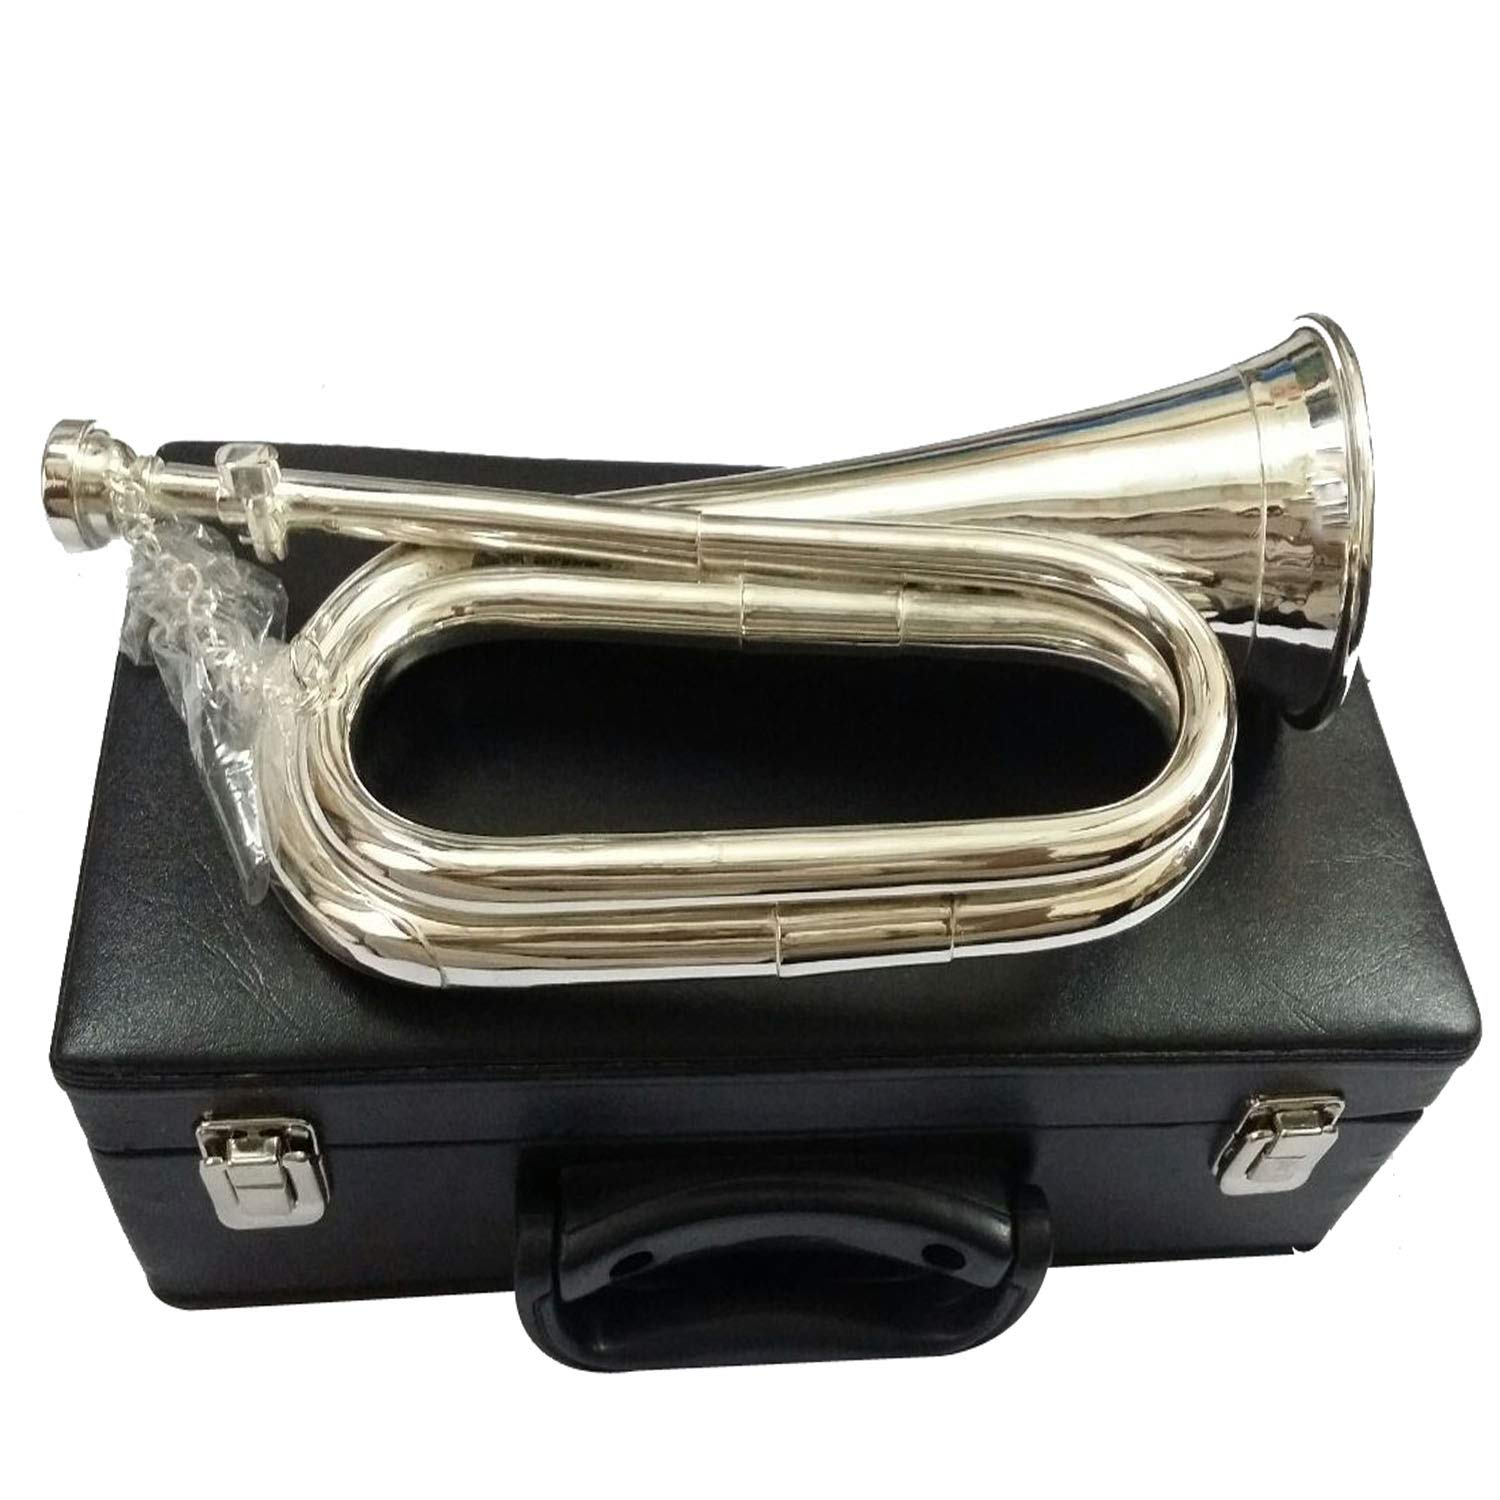 New Professional British Army Bb Bugle Silver Plated Tune able/Bb Bugle Silver